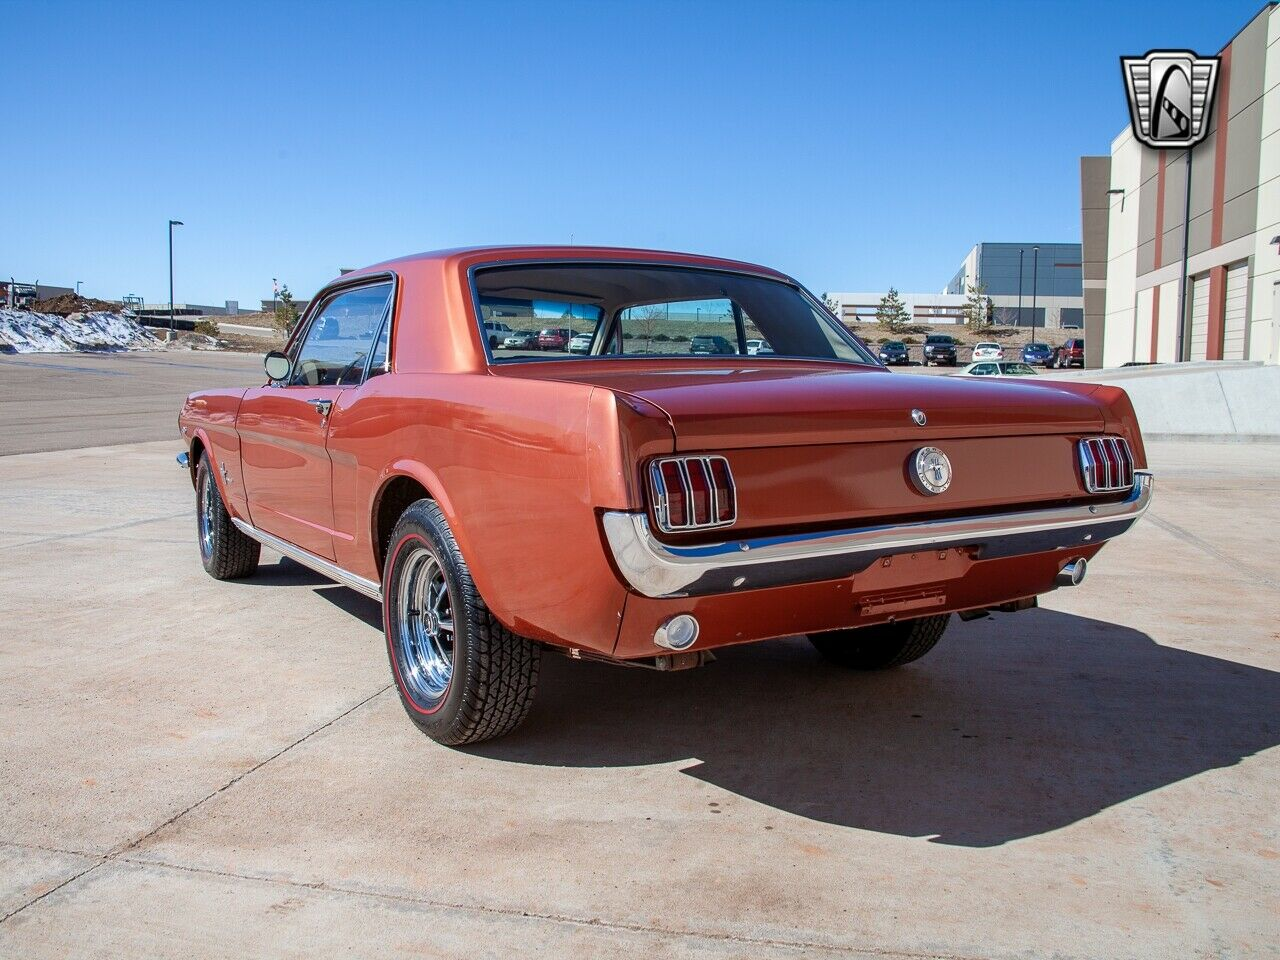 Ford Mustang 1966 photo 4